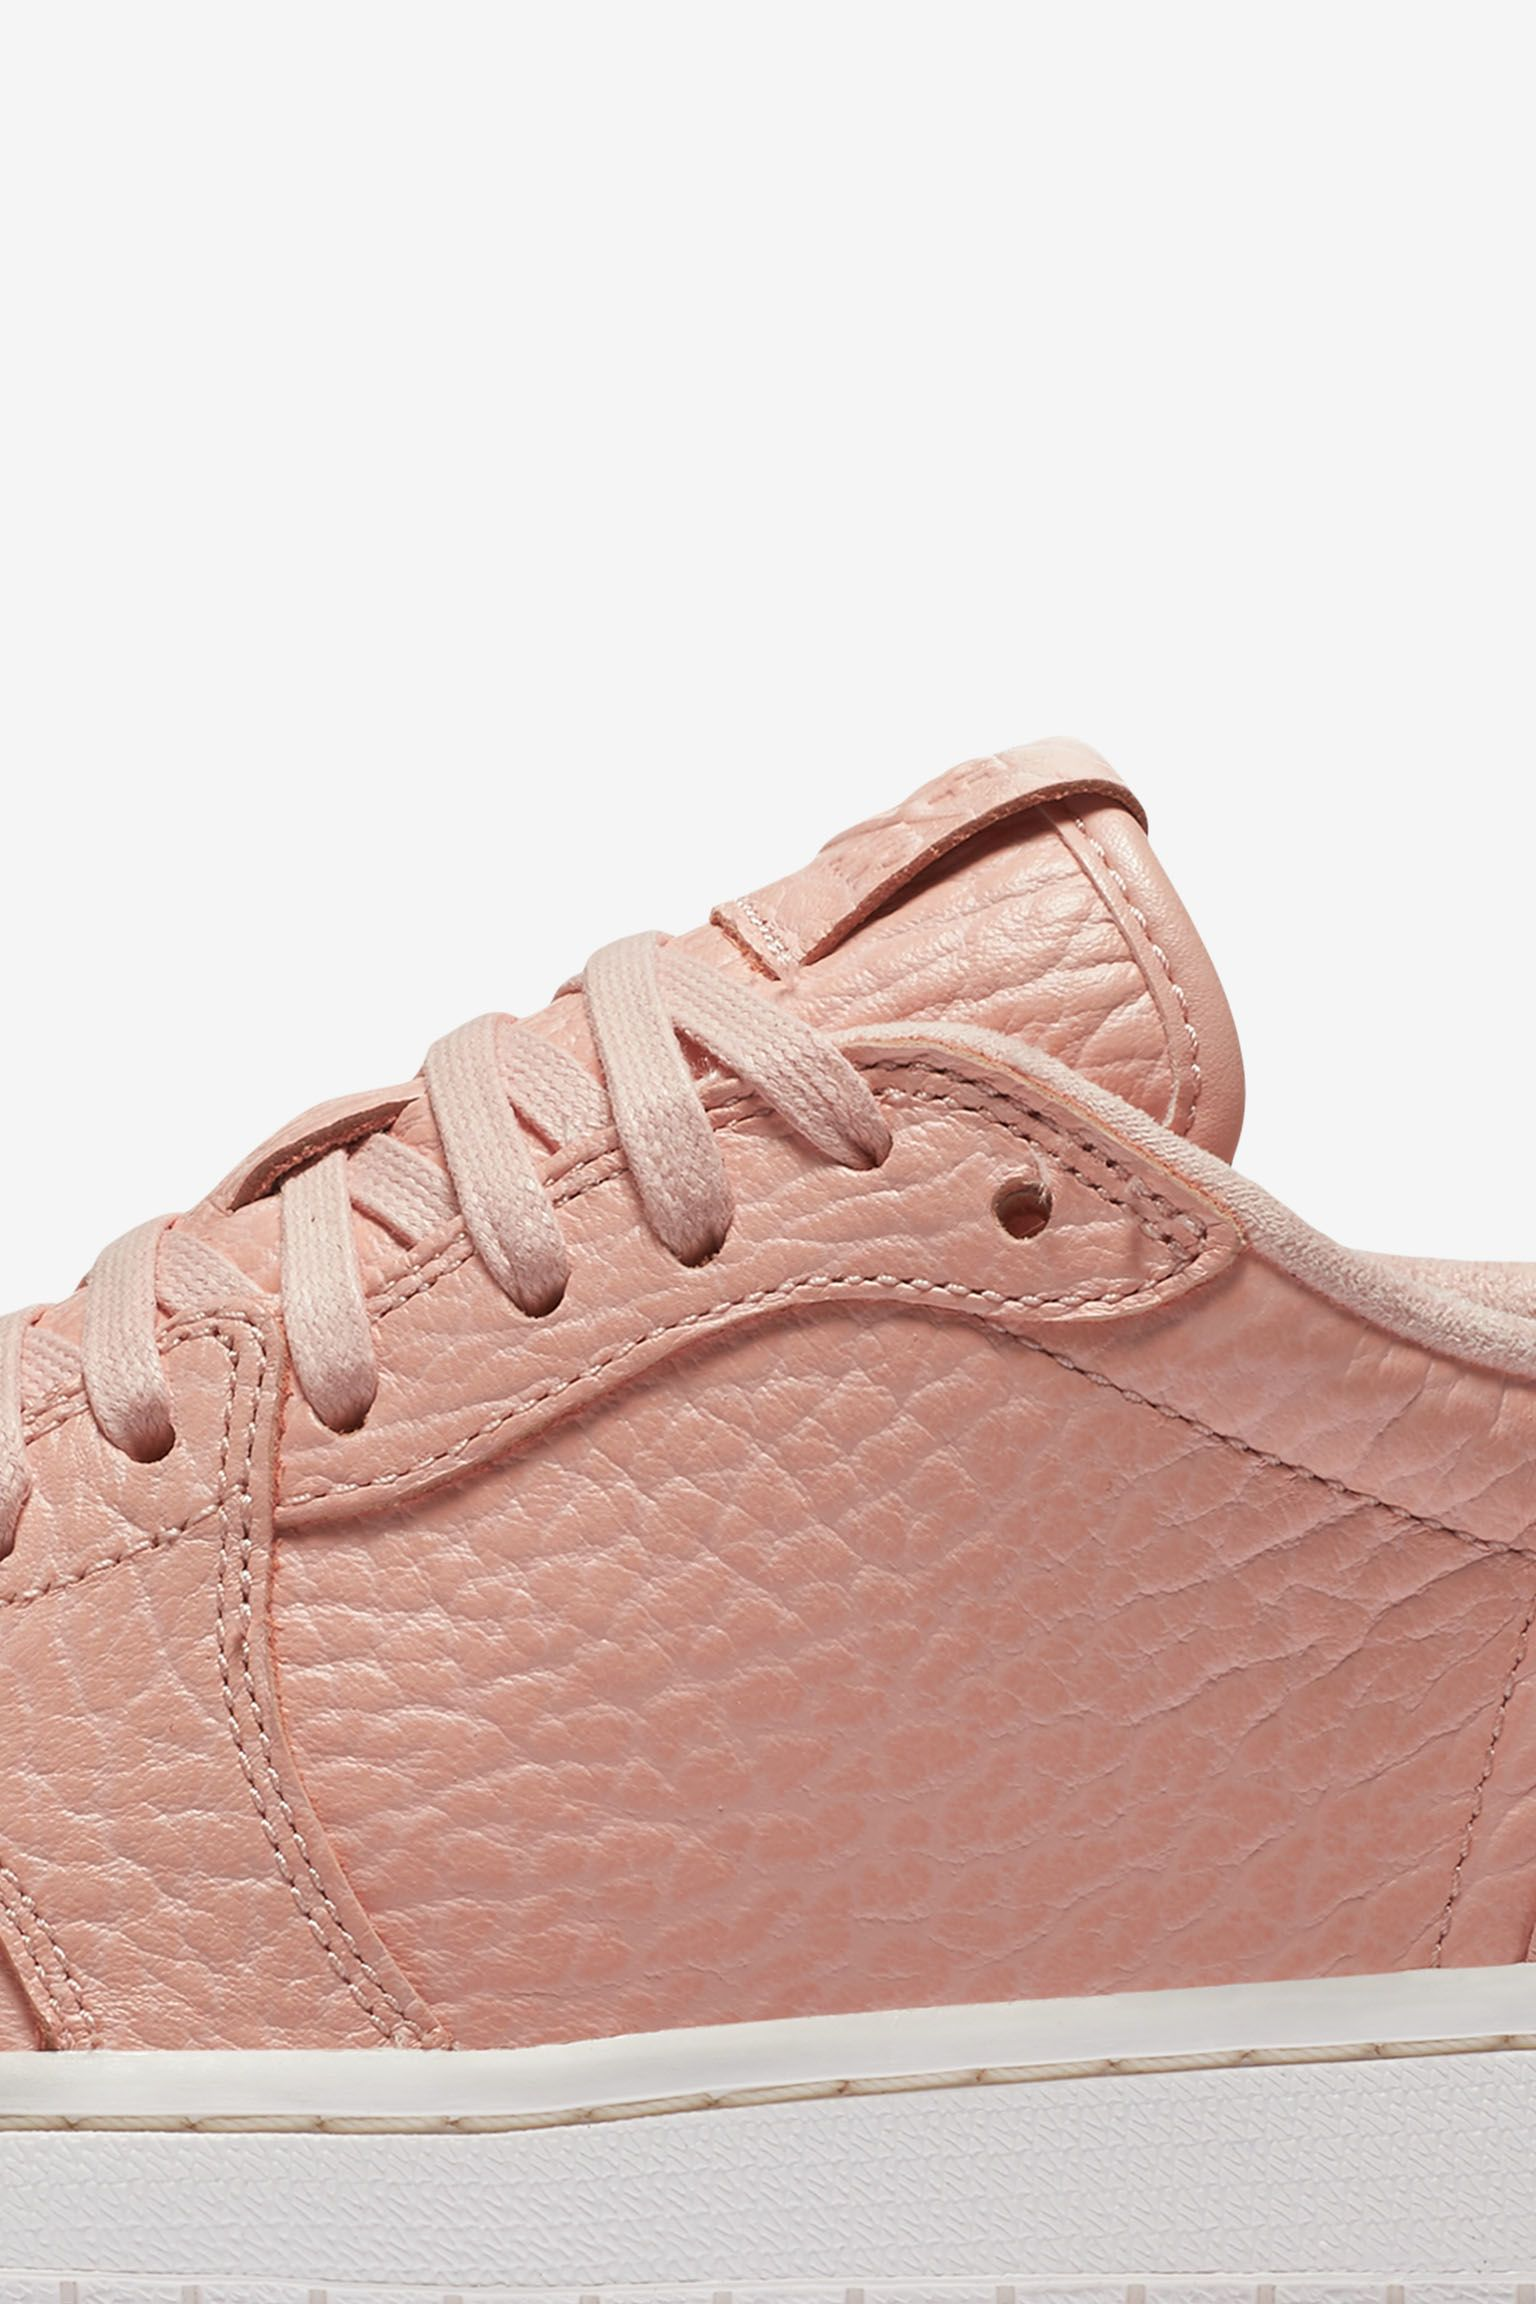 Air Jordan 1 Retro Low 'Swooshless Arctic Orange' Release Date